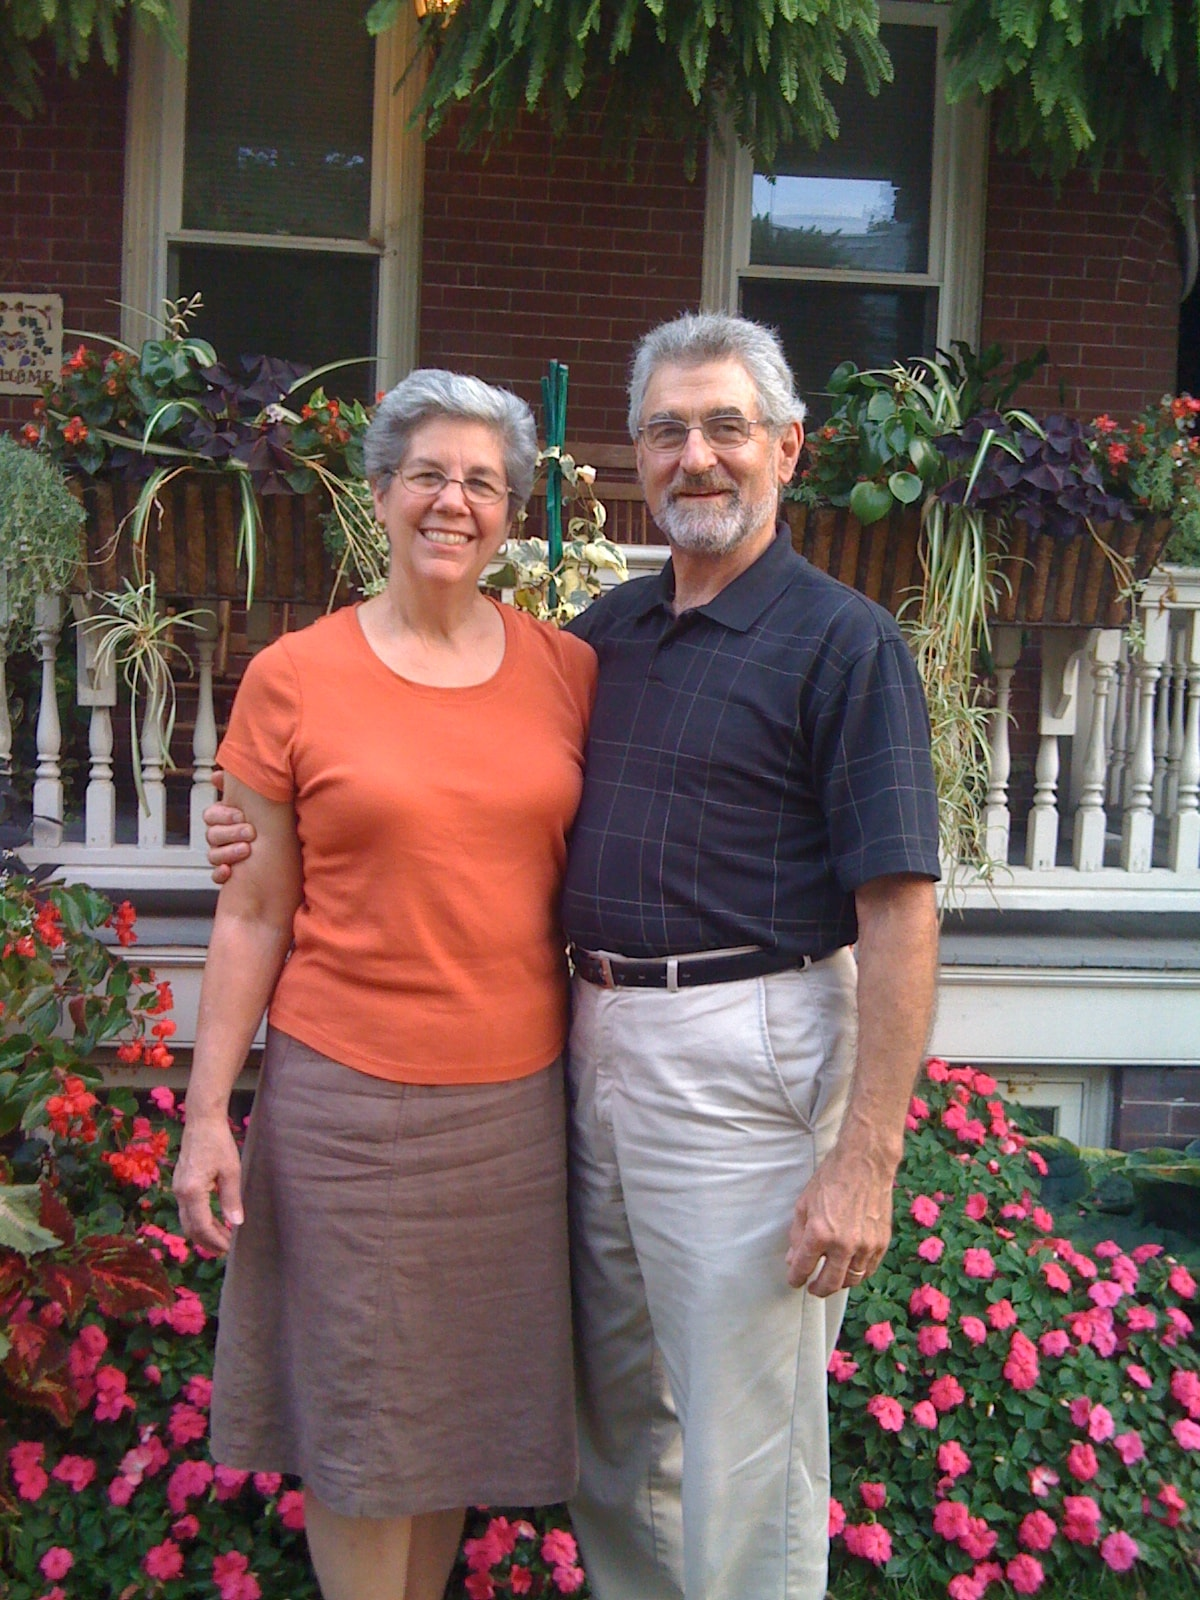 Kenneth And Elizabeth From York, PA